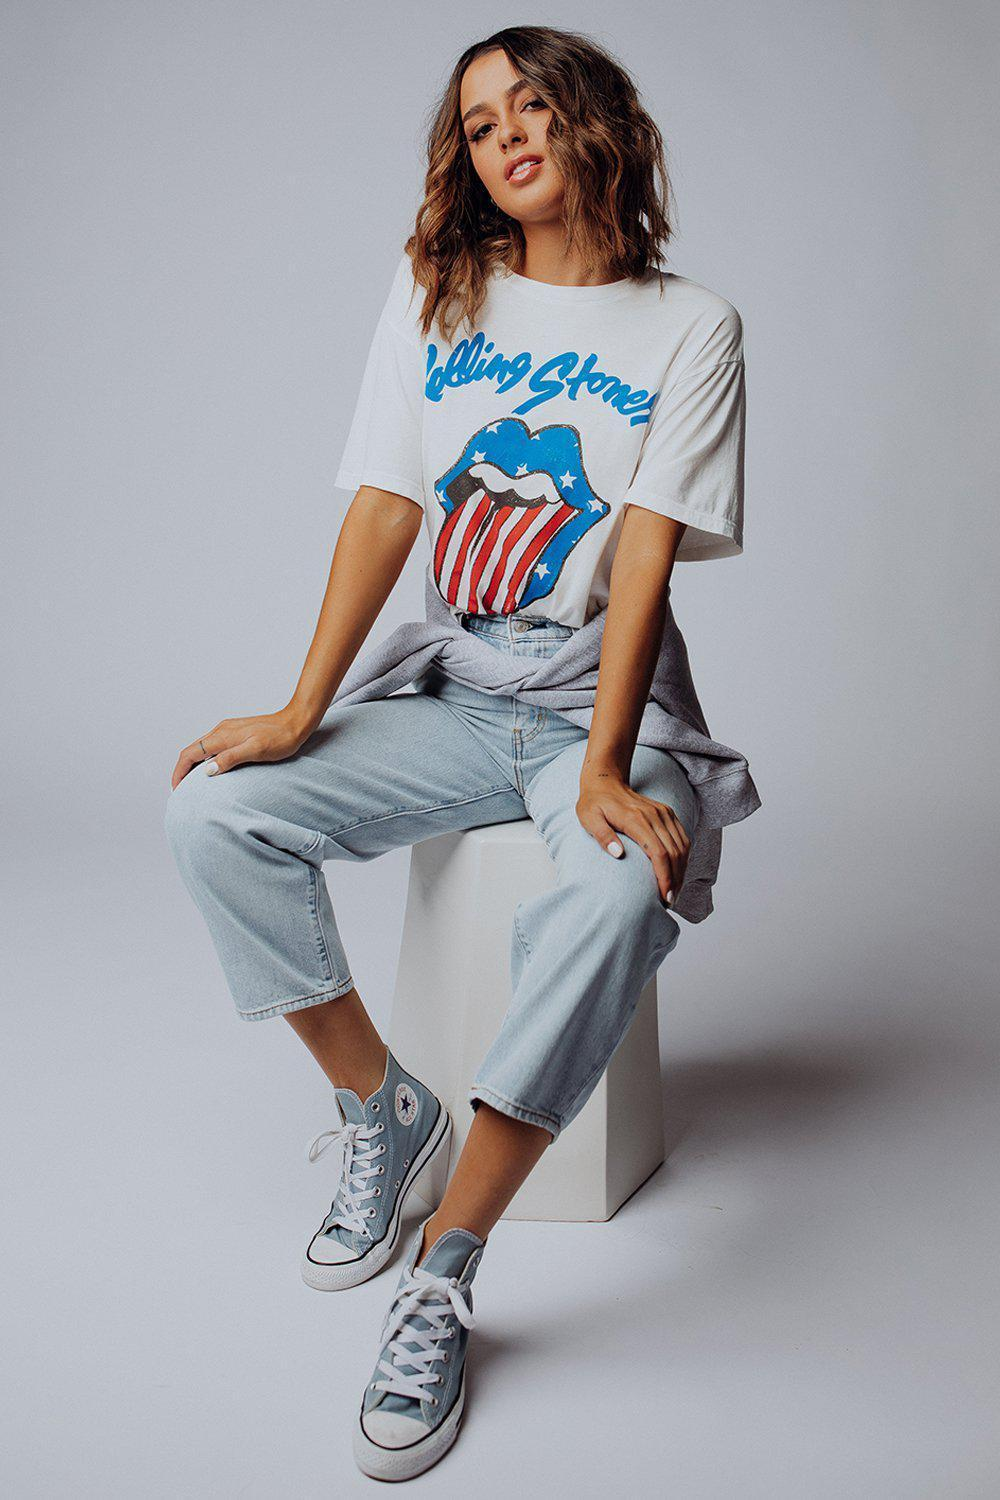 best_seller, Rolling Stones Stars And Stripes Boyfriend Tee - FINAL SALE, Tees, women's clothing, dresses, skirts, coats, jackets, shoes, boots, tops, tee shirts, jeans, free people, levi's, rollas, jumpsuits, bottoms, tops, sweaters, pullovers, pants, shorts, sweats,.